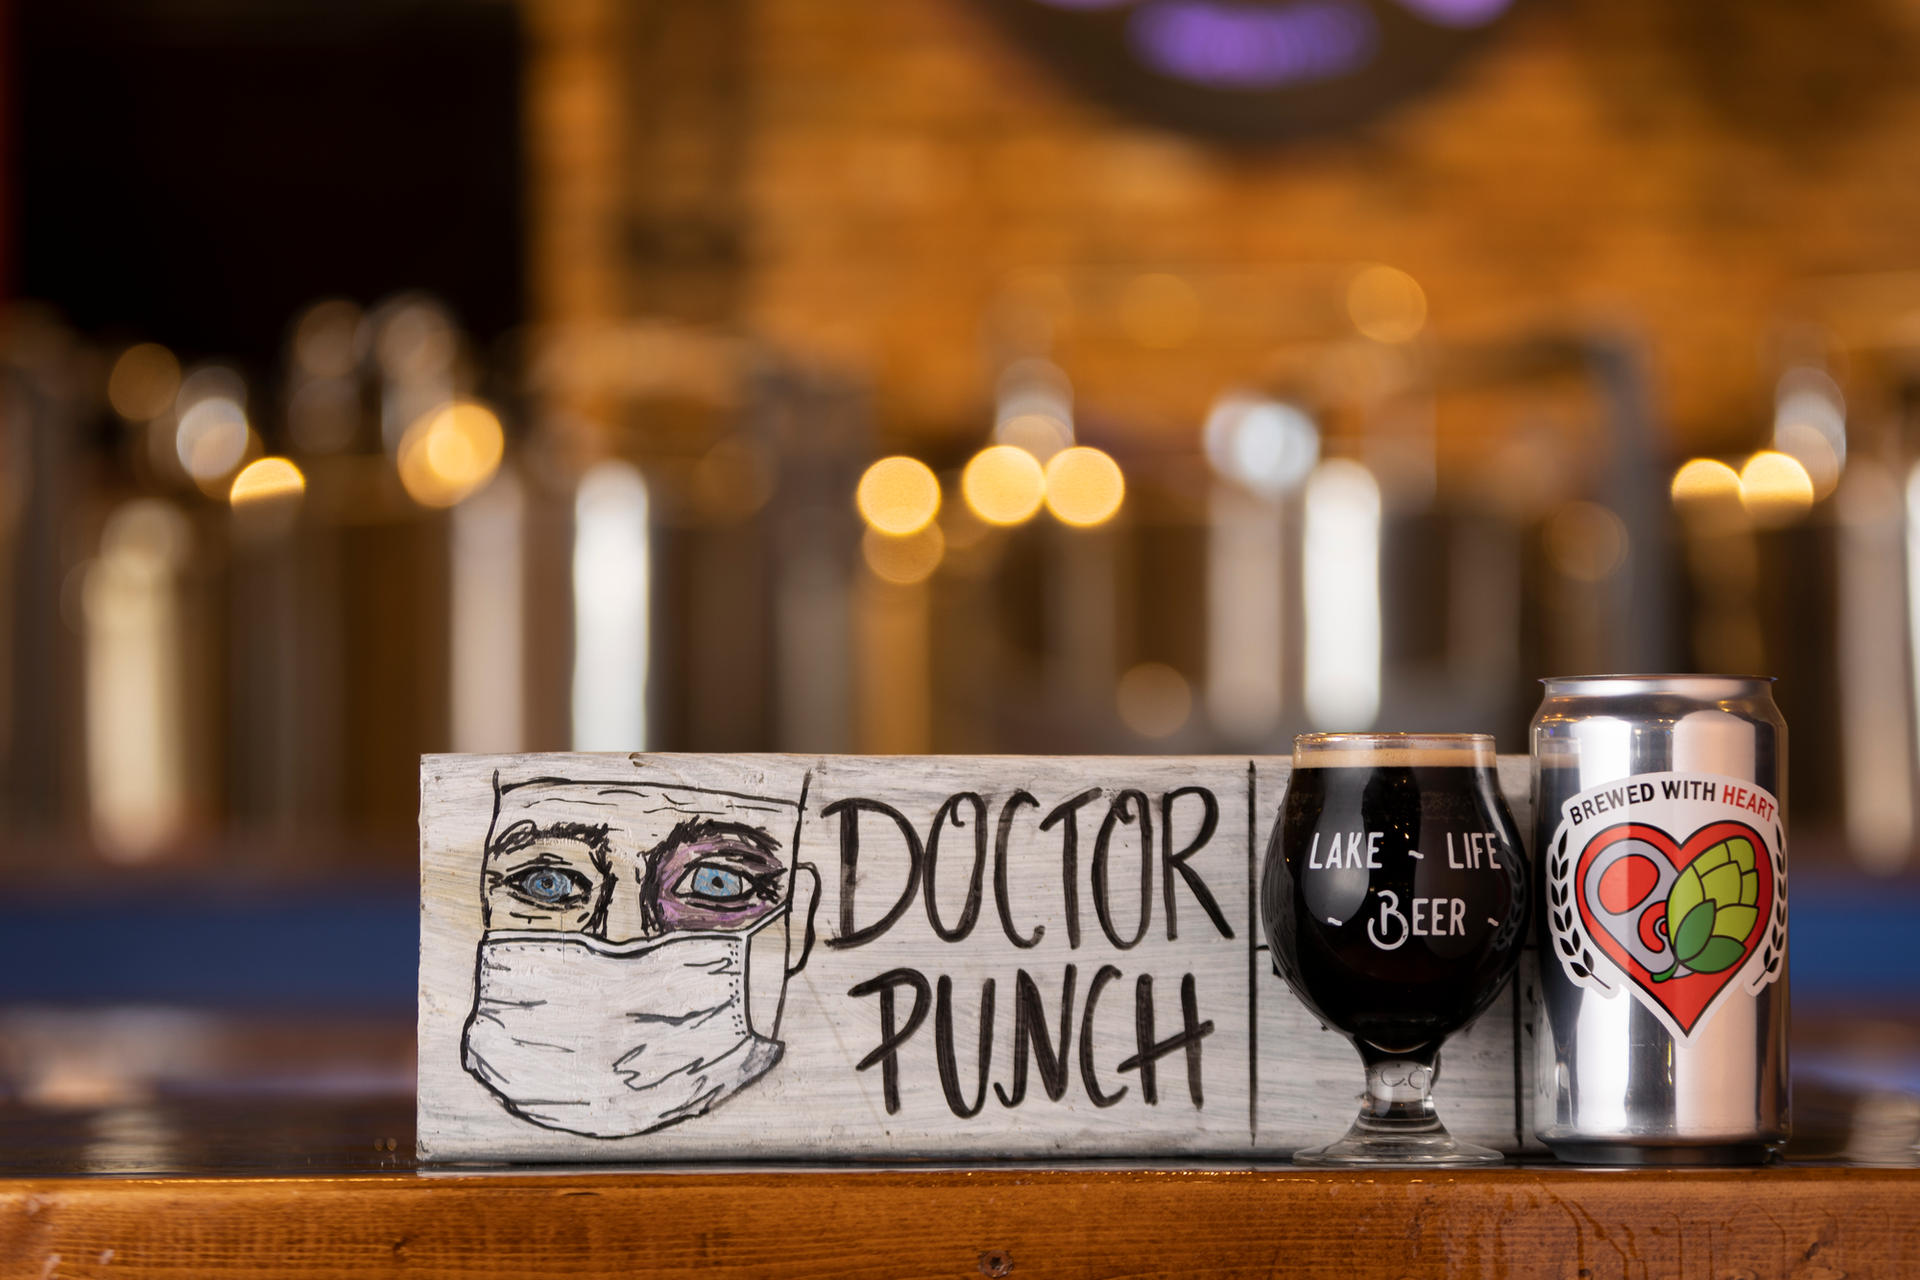 Doctor Punch - Scotch Ale